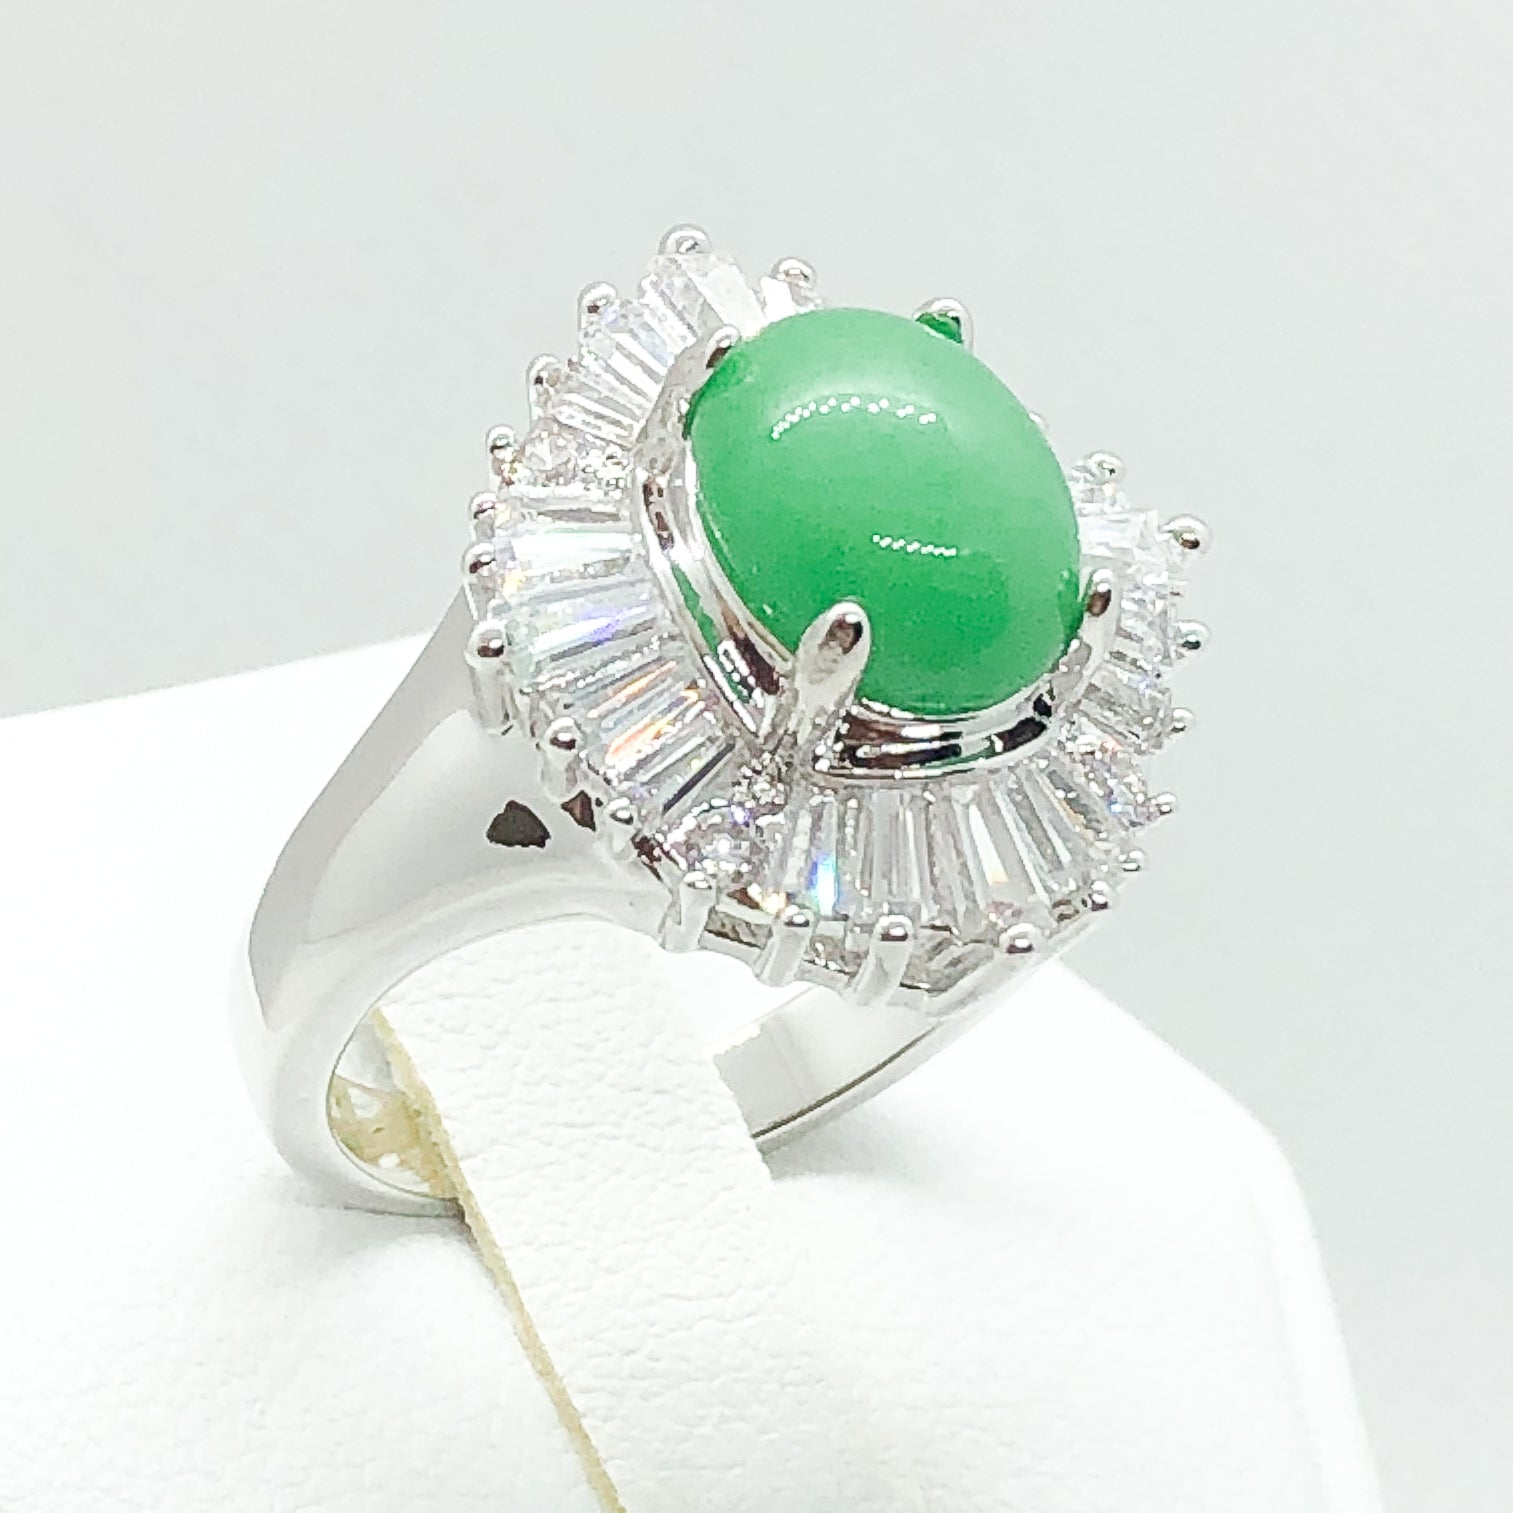 ID:R2955 Women Vintage Jewelry 18K White Gold GF Jade Cocktail Ring With Clear Crystal Accent Comfortable Daily Wear